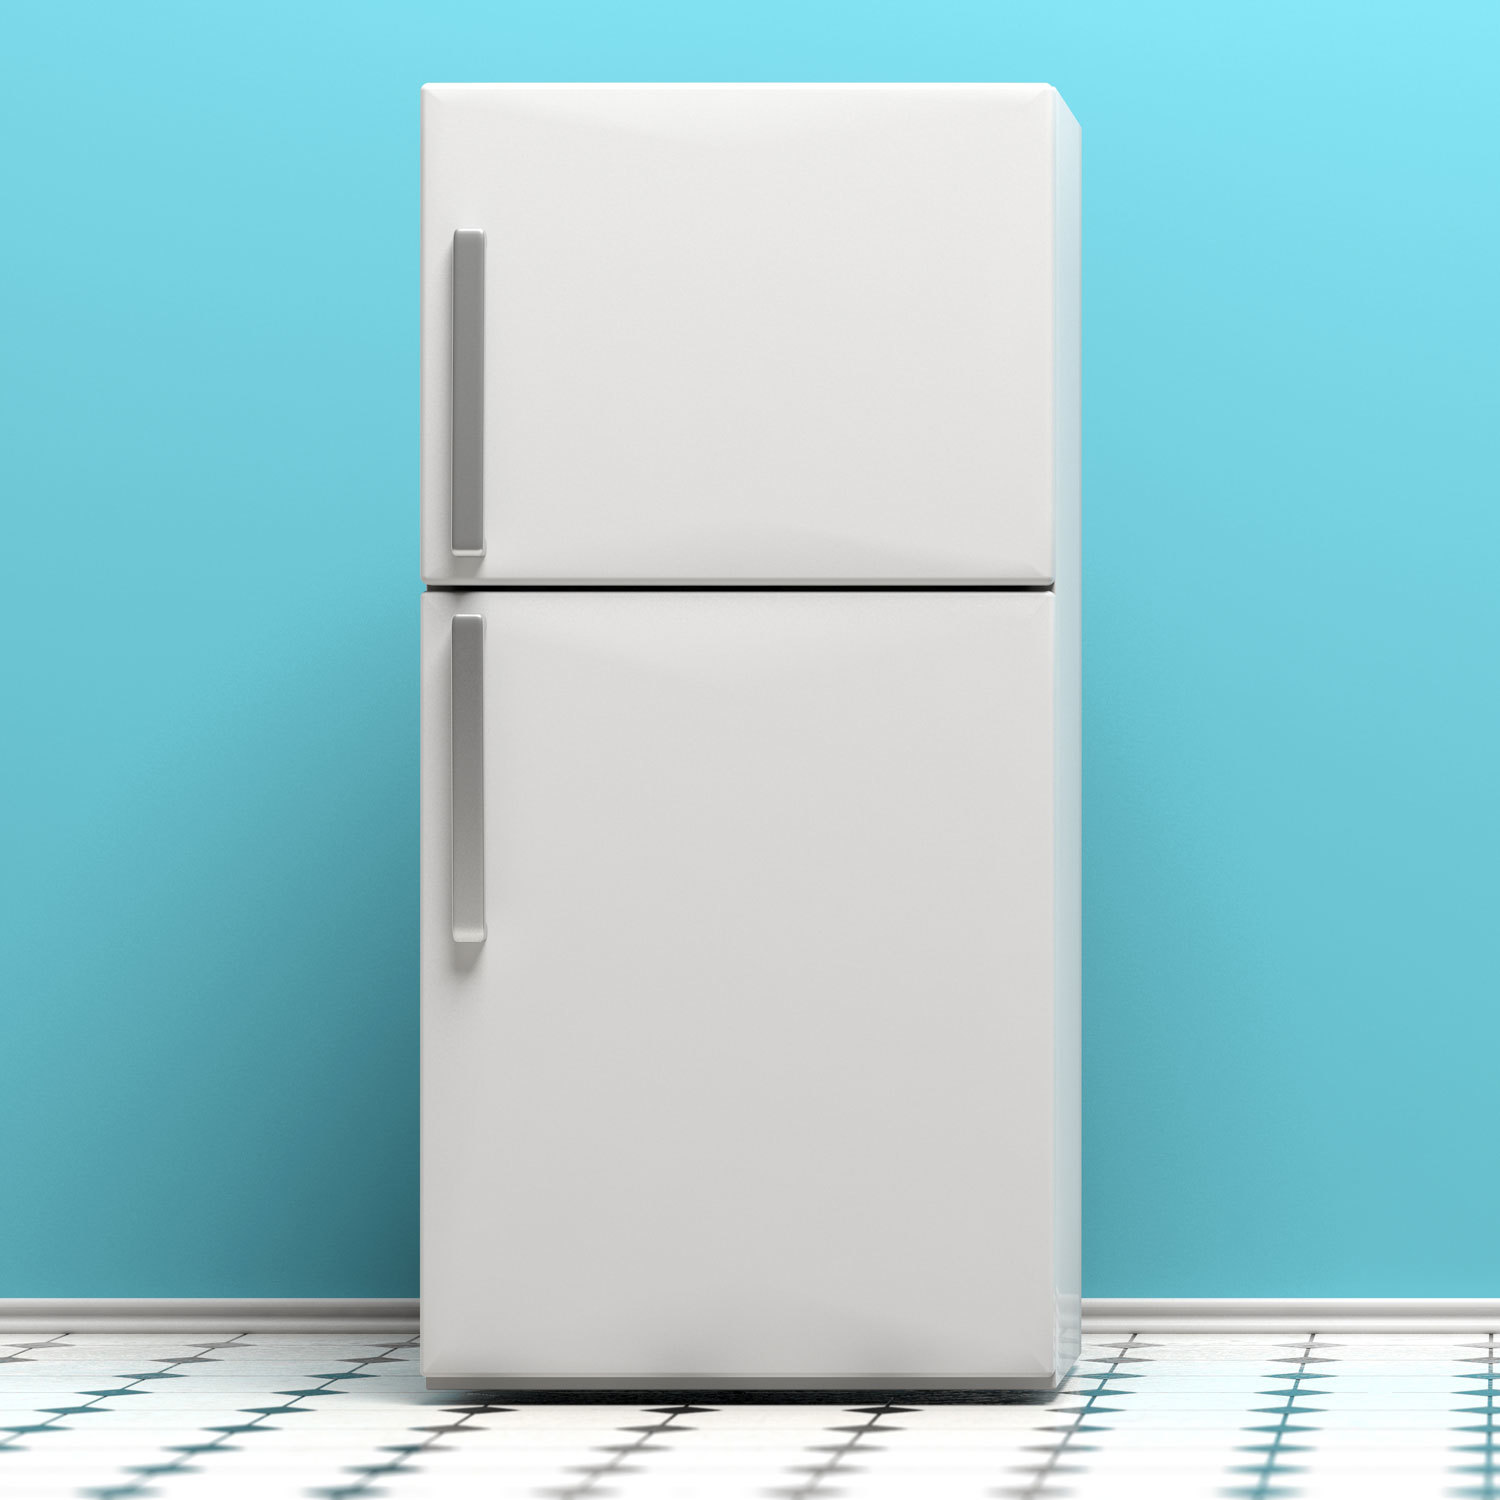 Photo of a refrigerator